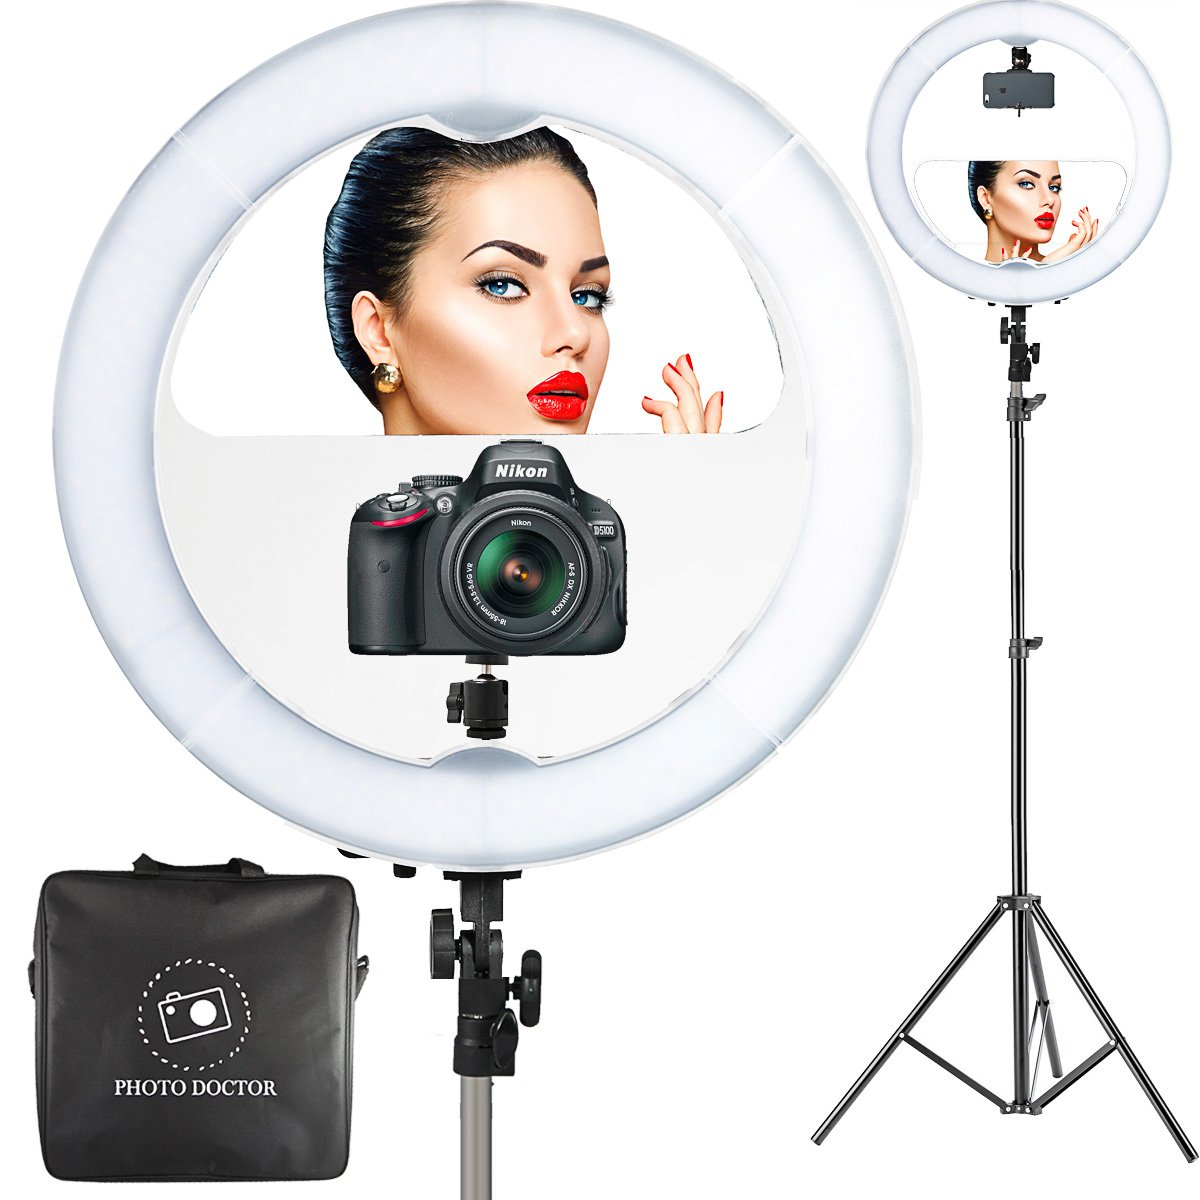 18'' LED Video Ring Light with Mirror, 6ft Stand Tripod, Adjustable Heavy Duty Mount for DSLR, iPhone & Android Smartphones - Professional Studio Photography Dimmable Lighting Kit for Makeup & Youtube